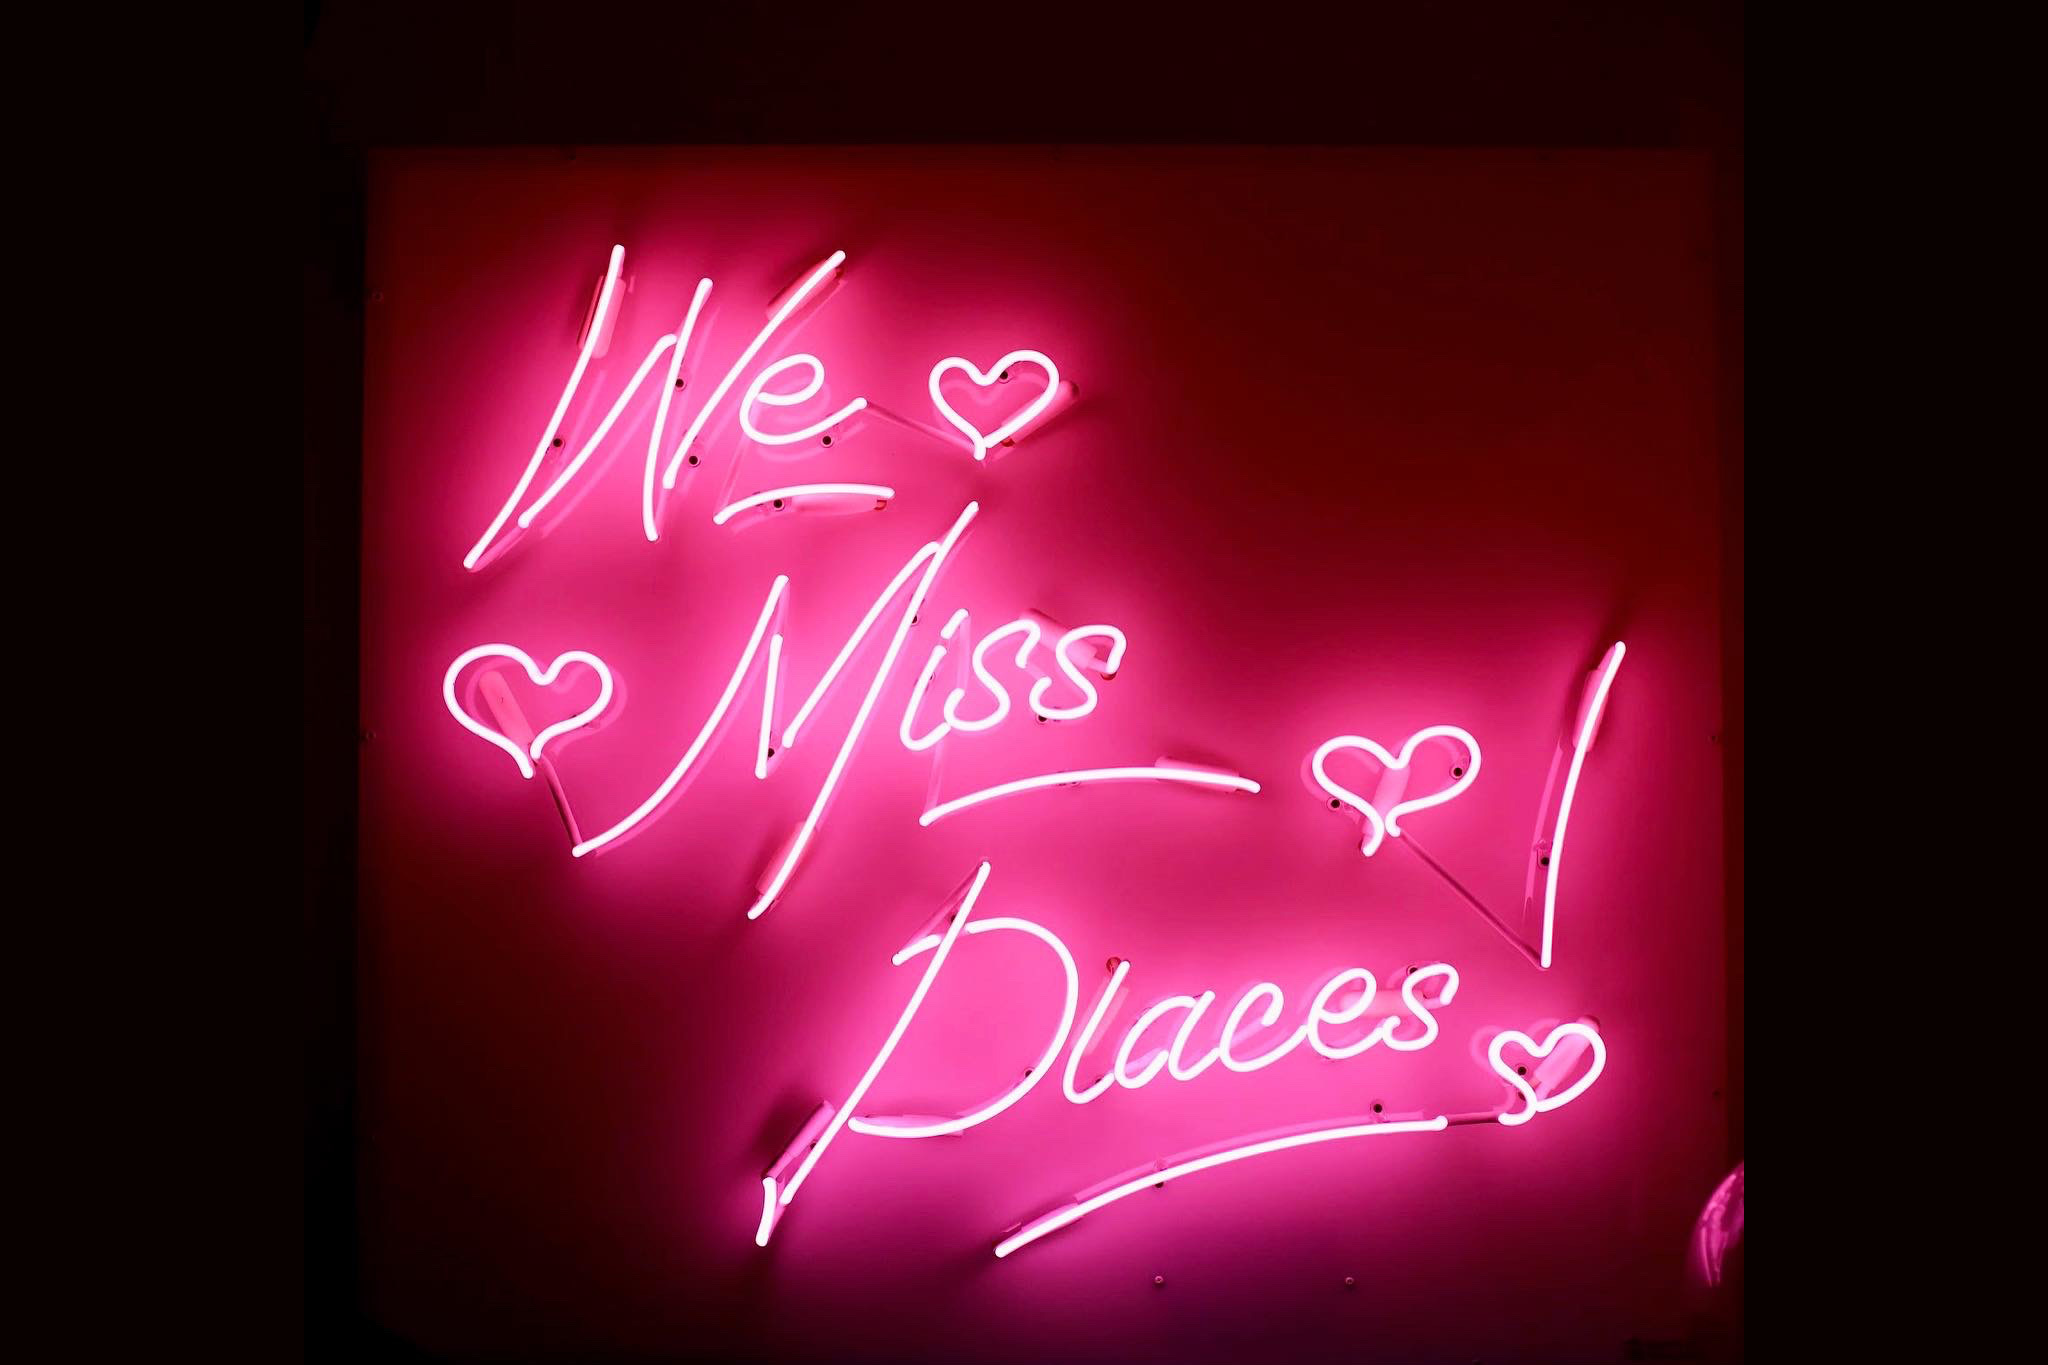 Neon sign that says We Miss Places